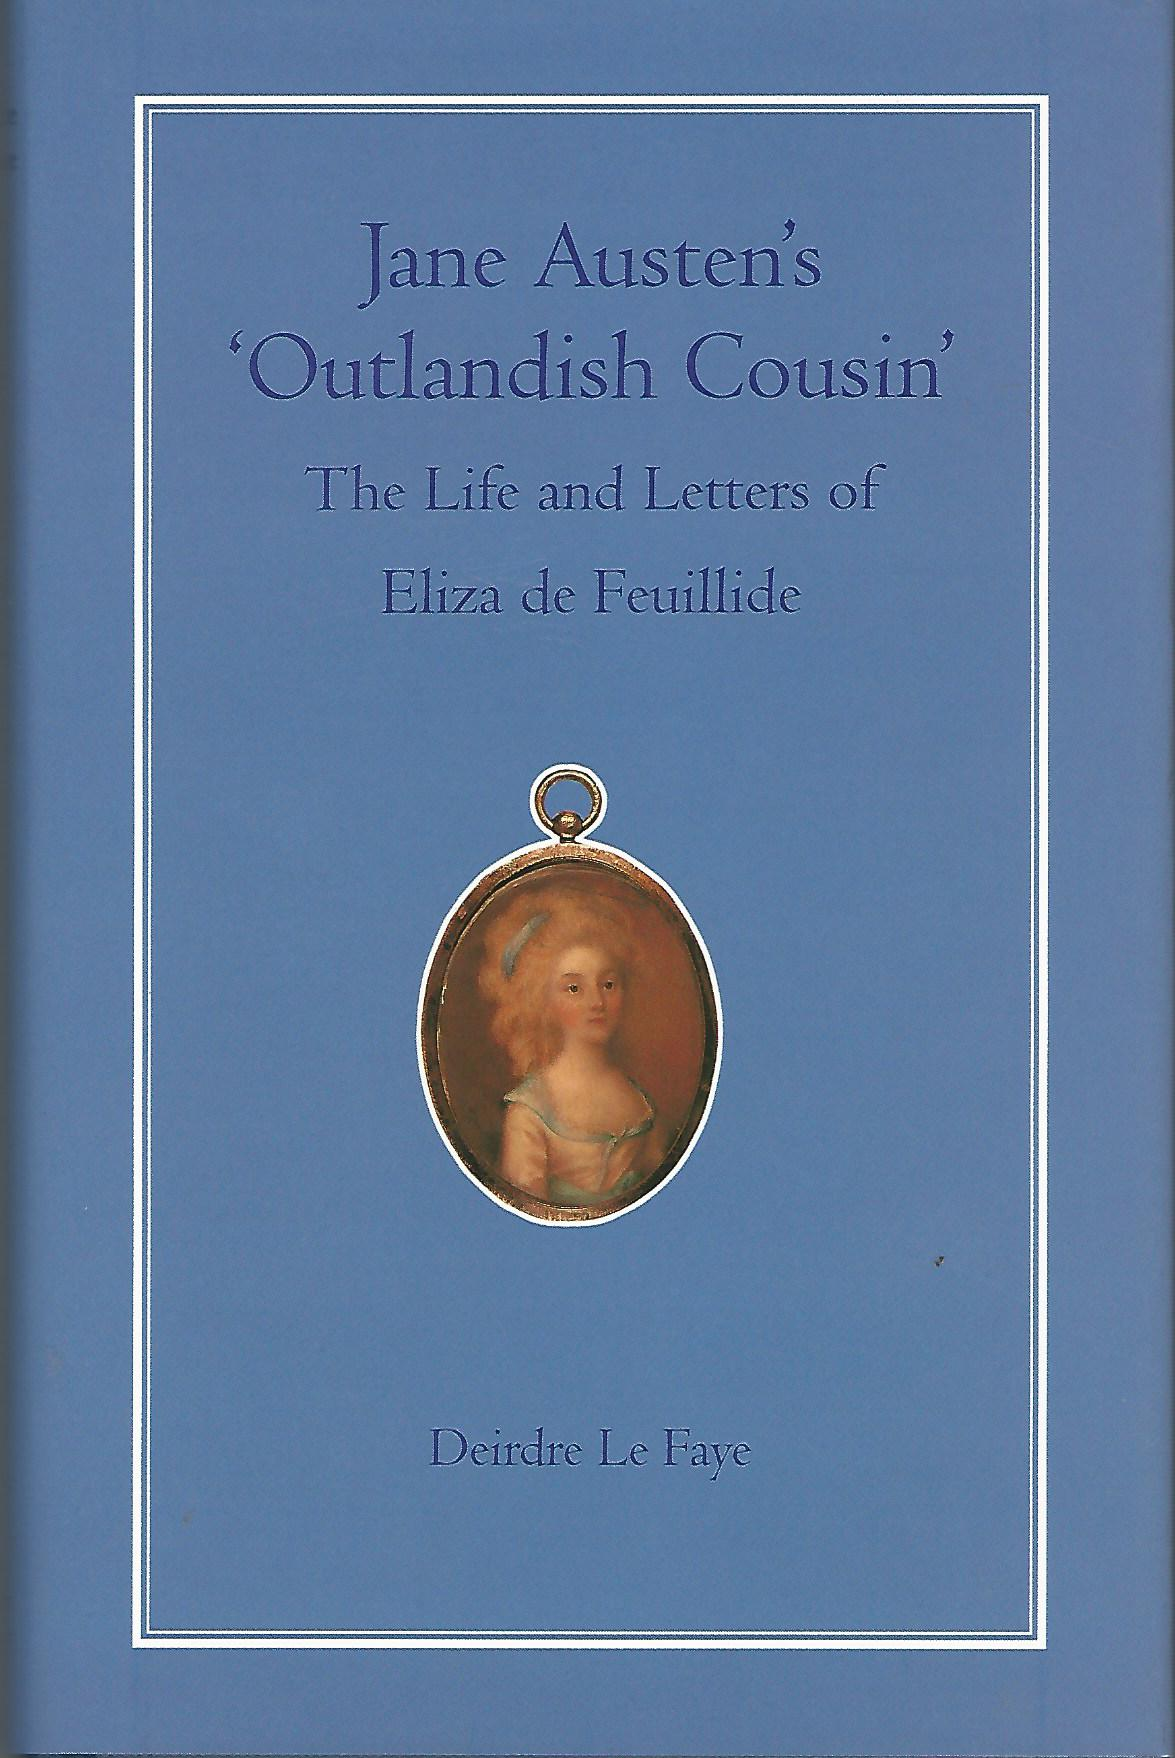 Image for Jane Austen's Outlandish Cousin: The Life and Letters of Elliza De Feuillide